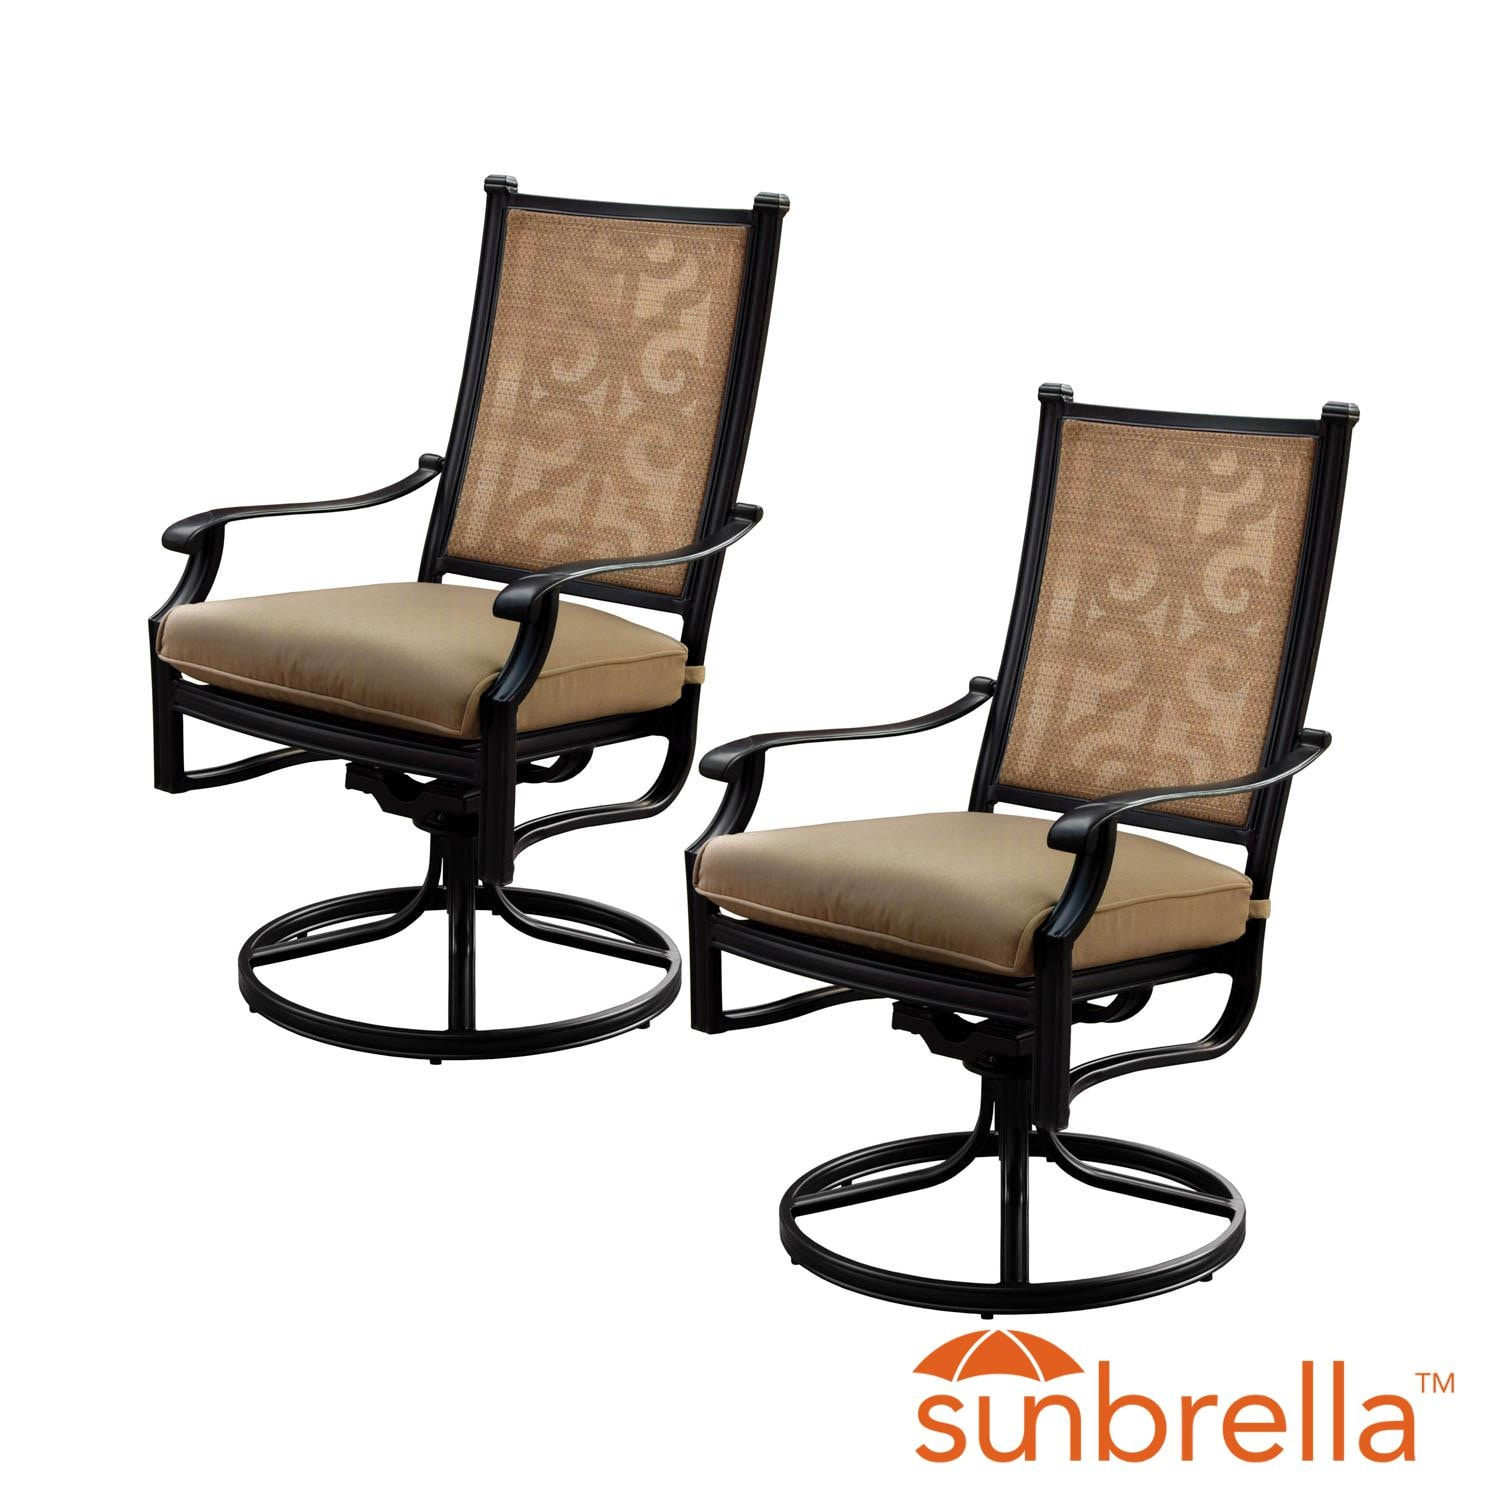 2 piece rocking chair cushions orange metal chairs bocage sling patio swivel rocker dining w